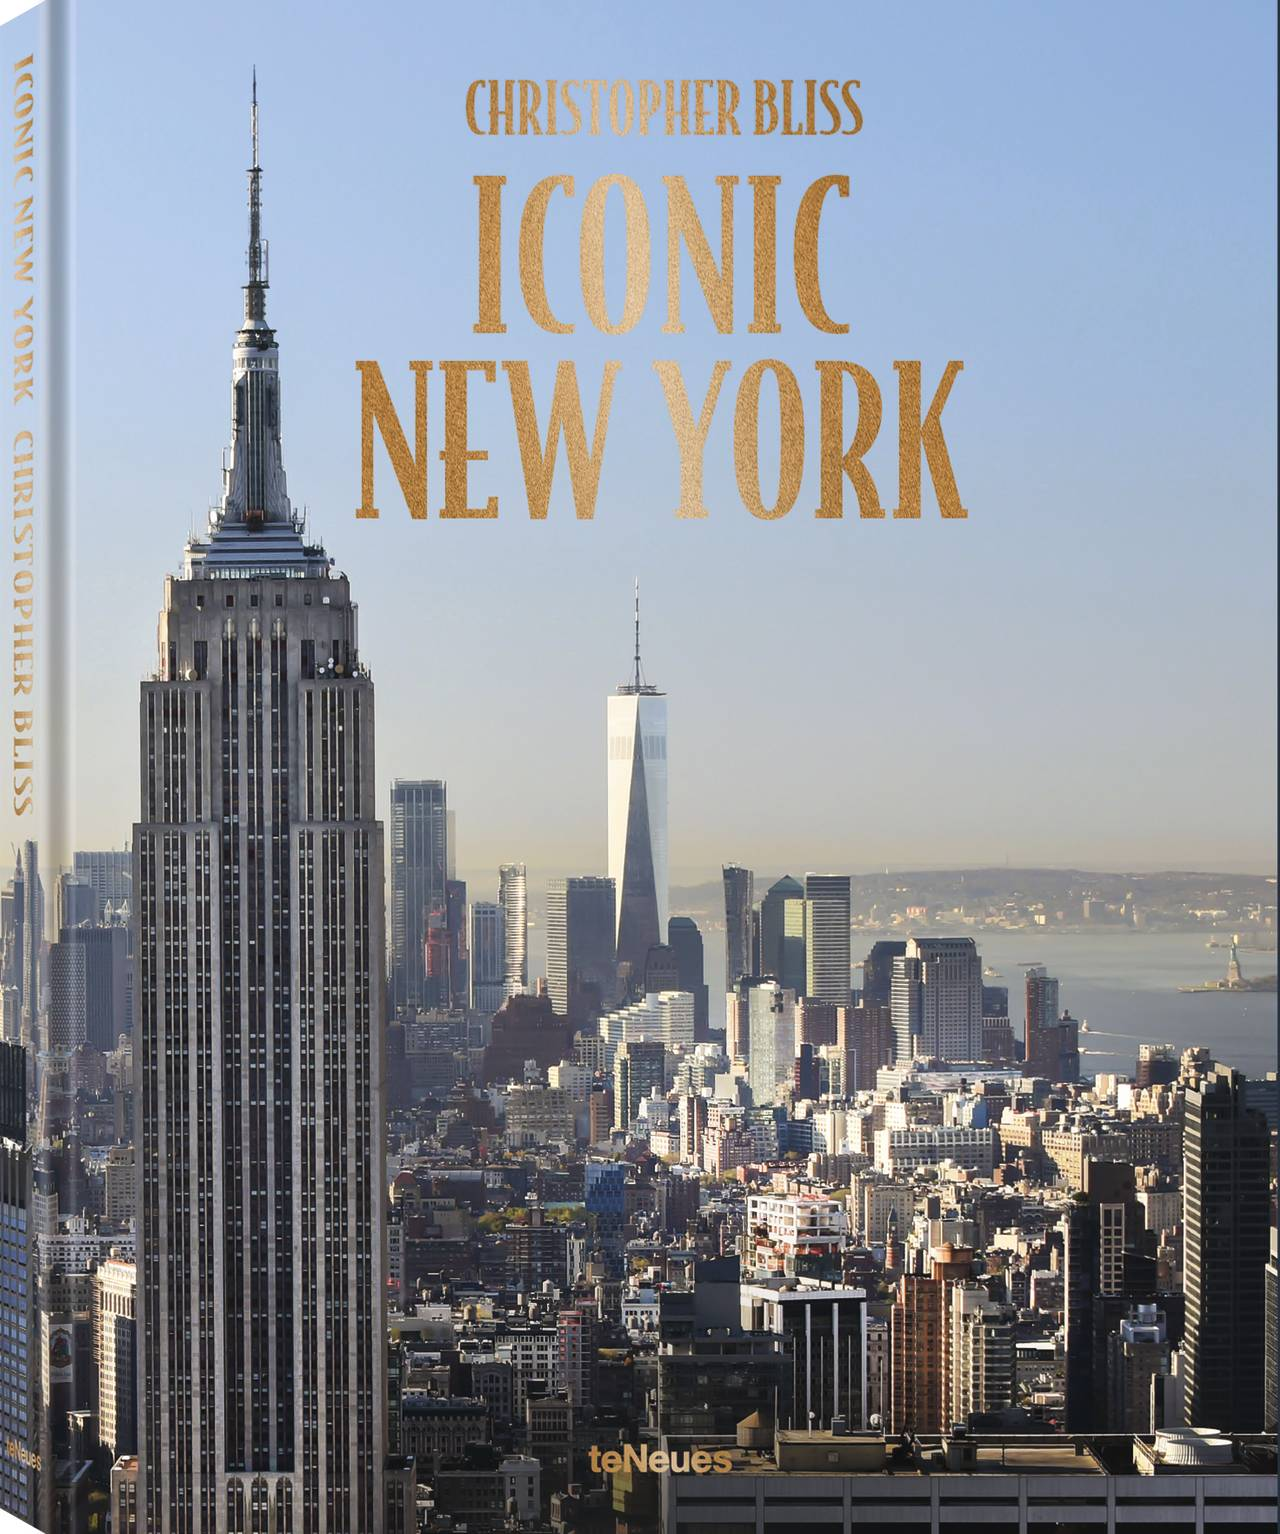 © ICONIC NEW YORK Expanded Edition by Christopher Bliss, published by teNeues, www.teneues.com, New York City skyline looking south, 2019, Photo © 2019 Christopher Bliss. All rights reserved.